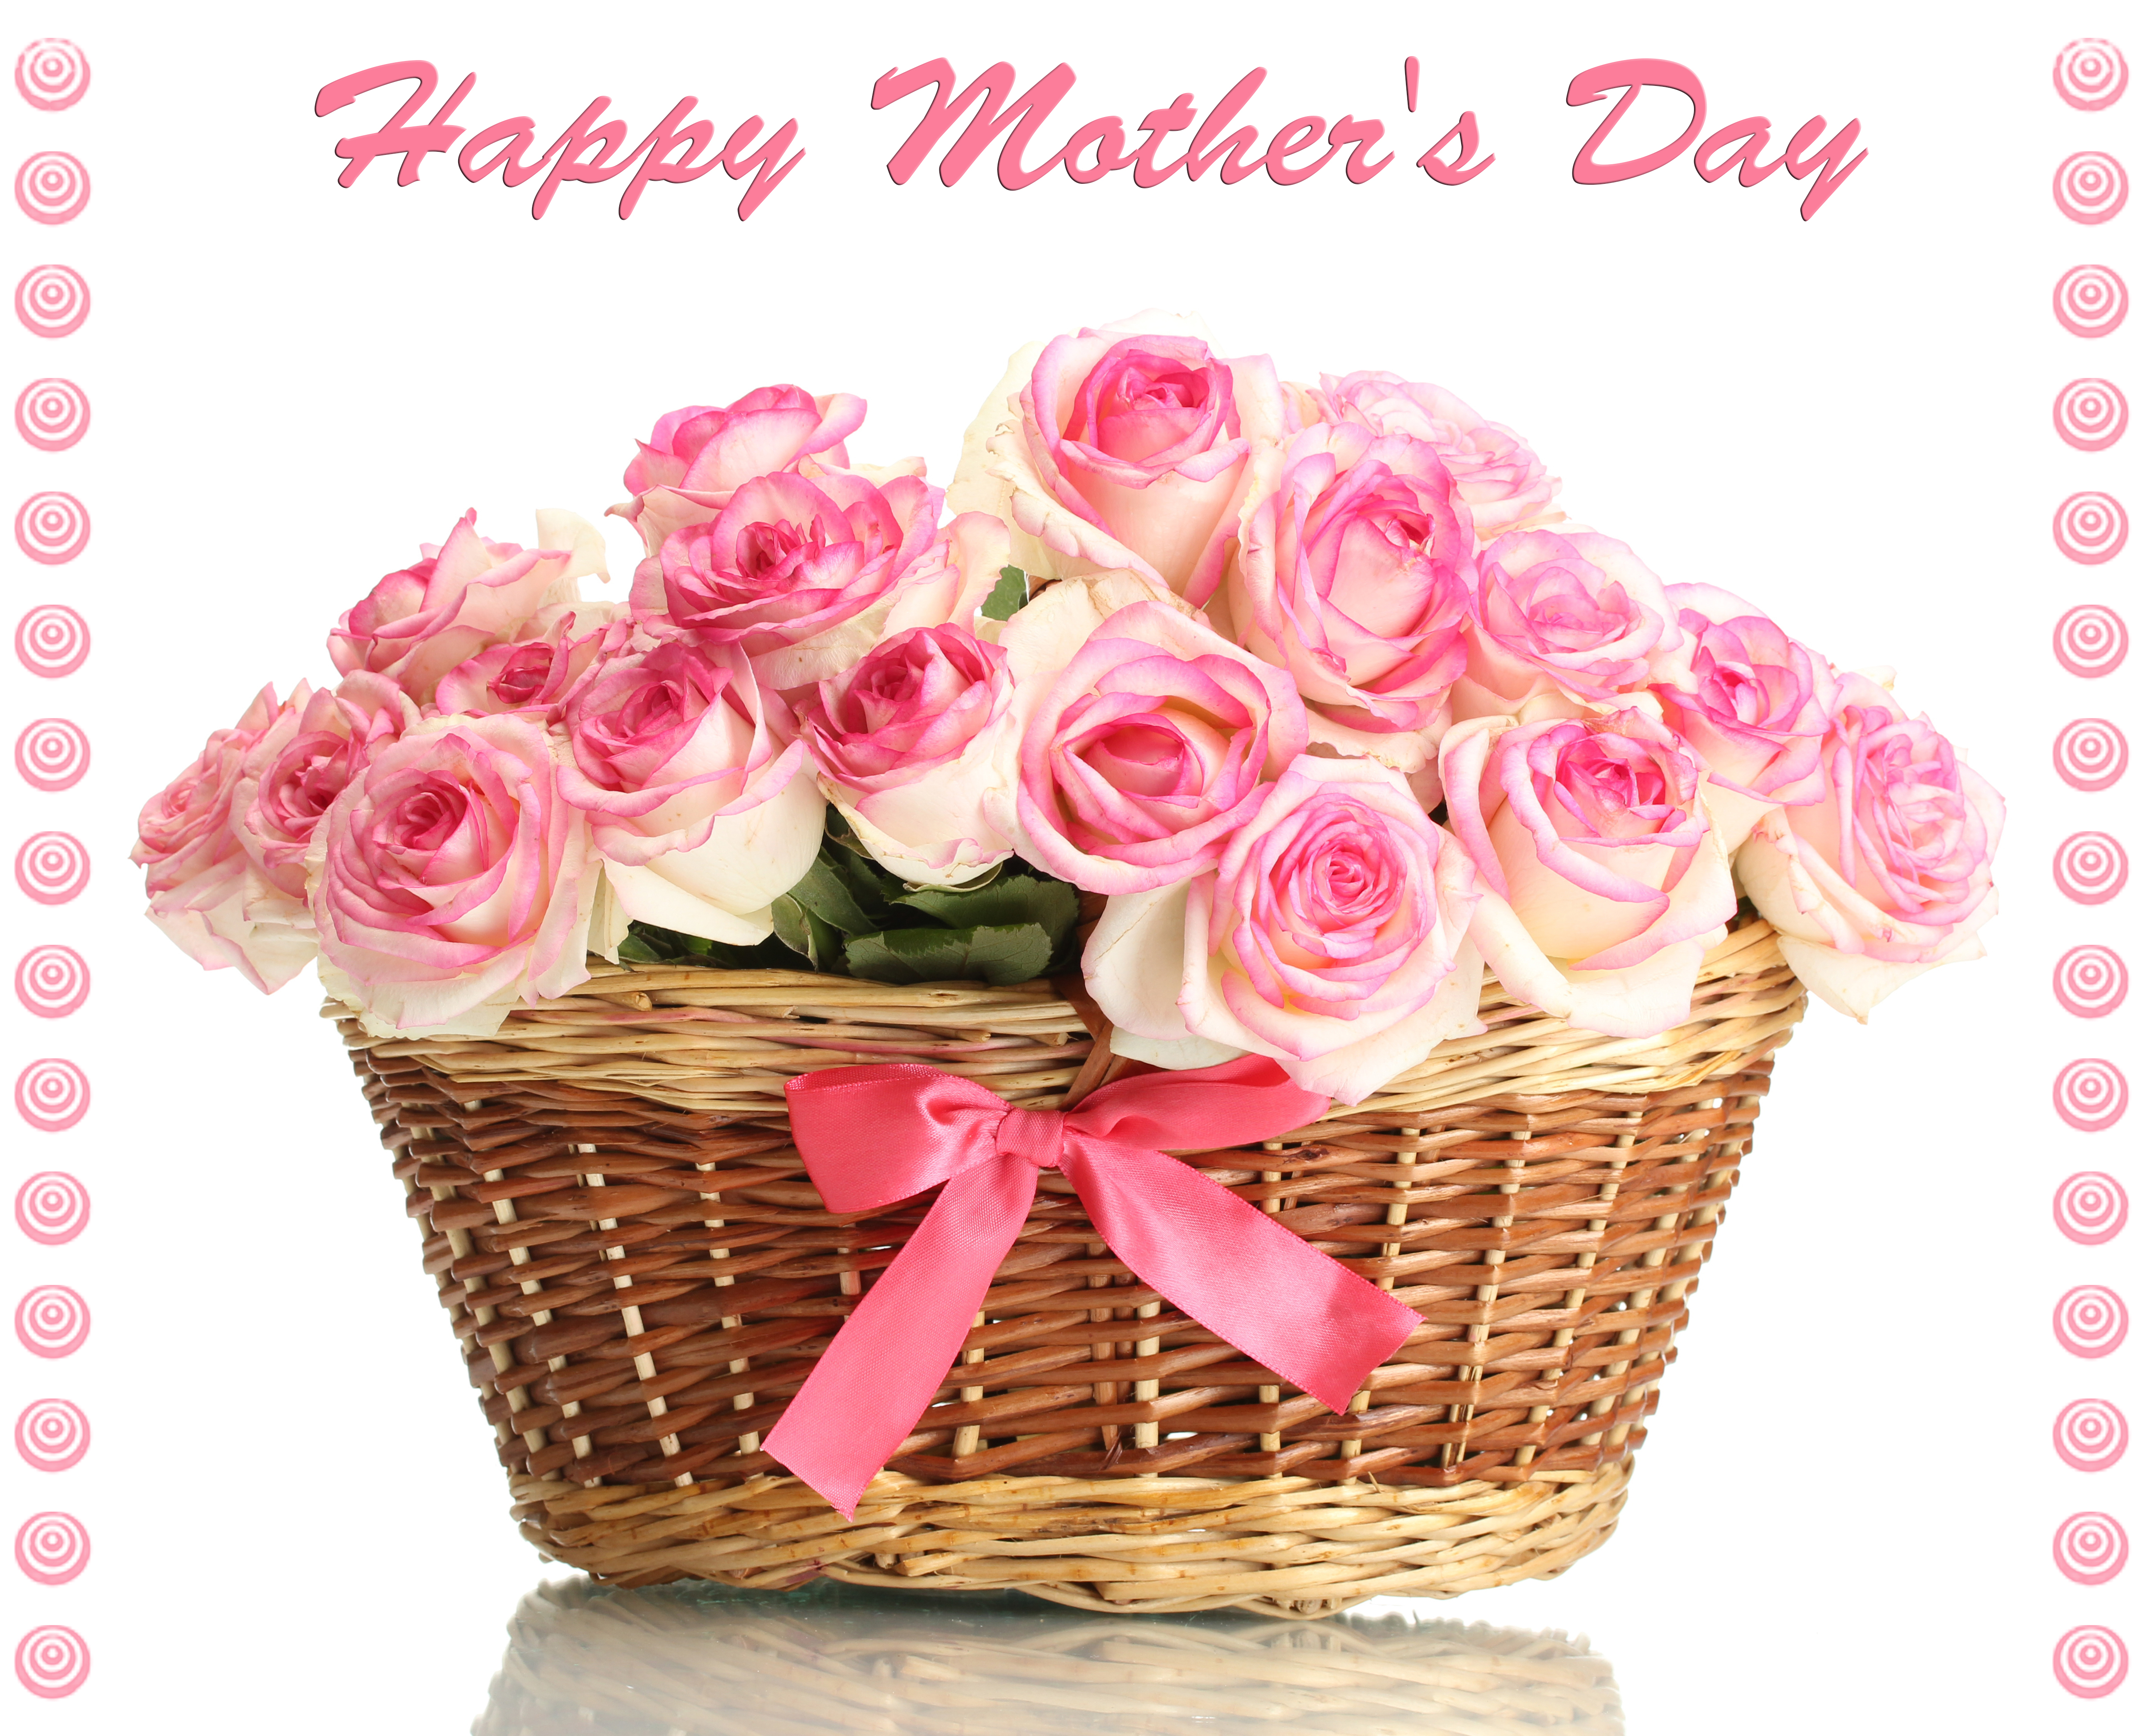 Beautiful Bouquet Of Pink Roses In Basket Isolated On White Win Mother S Day